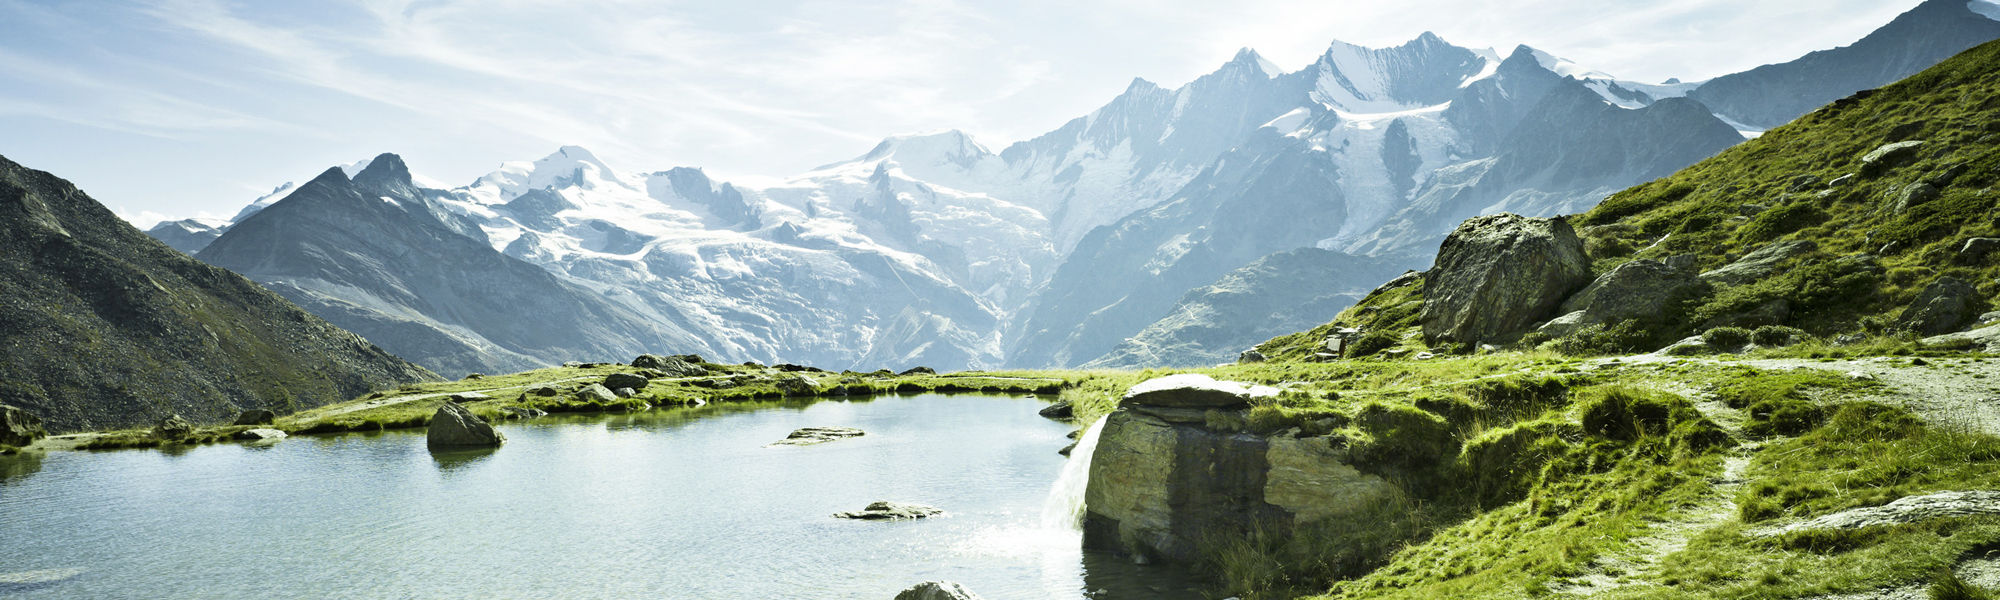 Alpine Wellness in the Free Republic of Holidays Saas-Fee